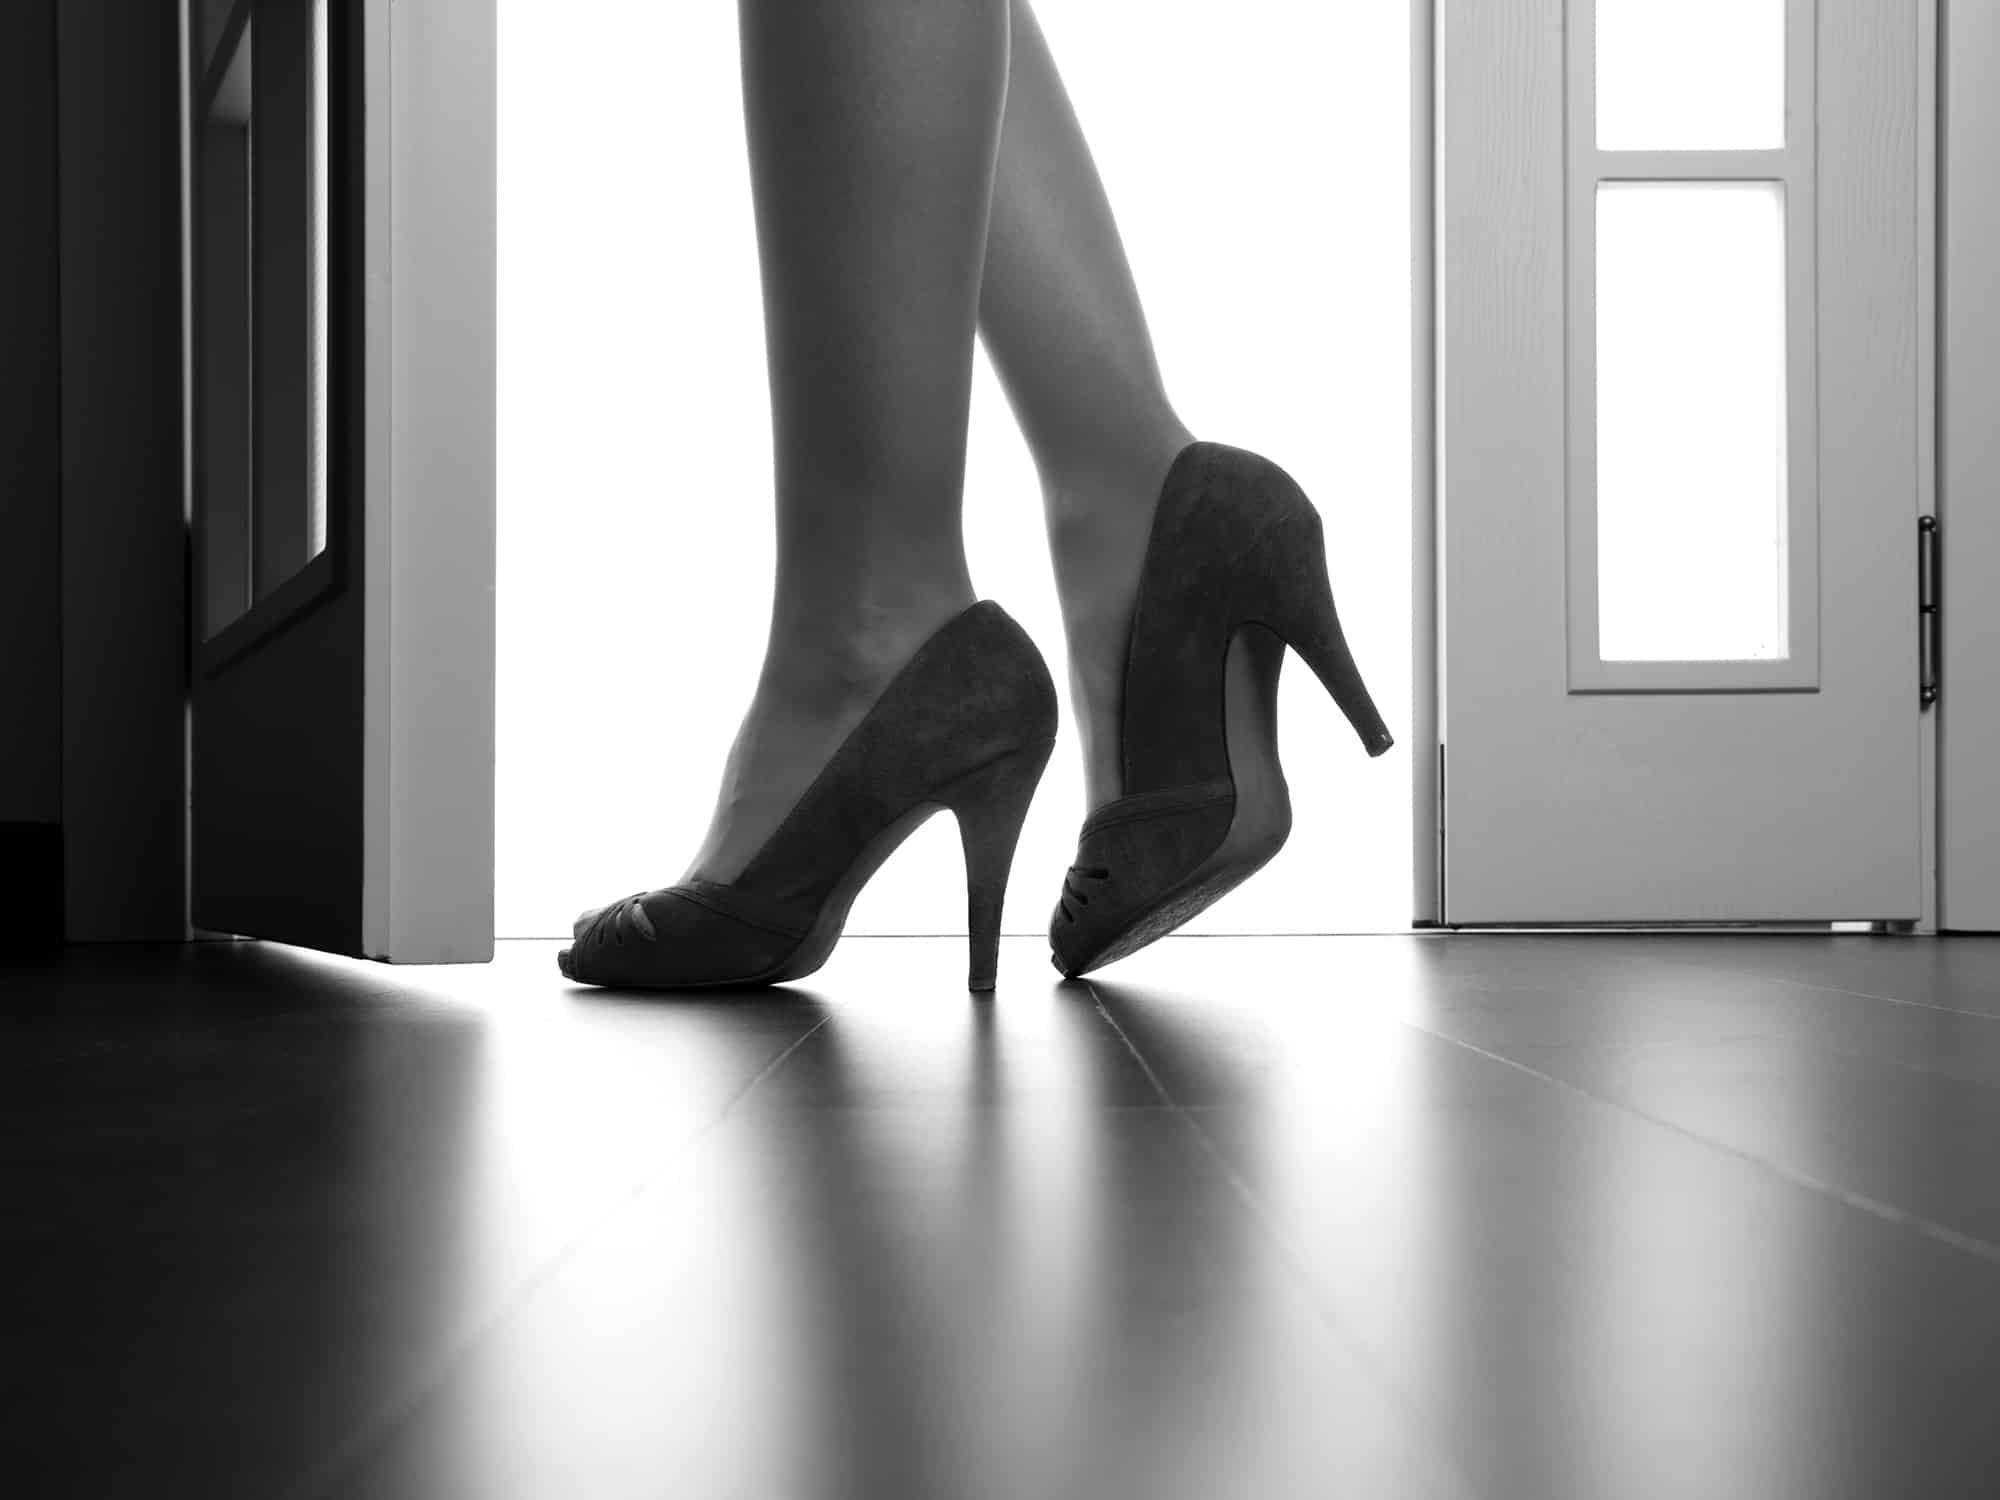 heels at door black and white